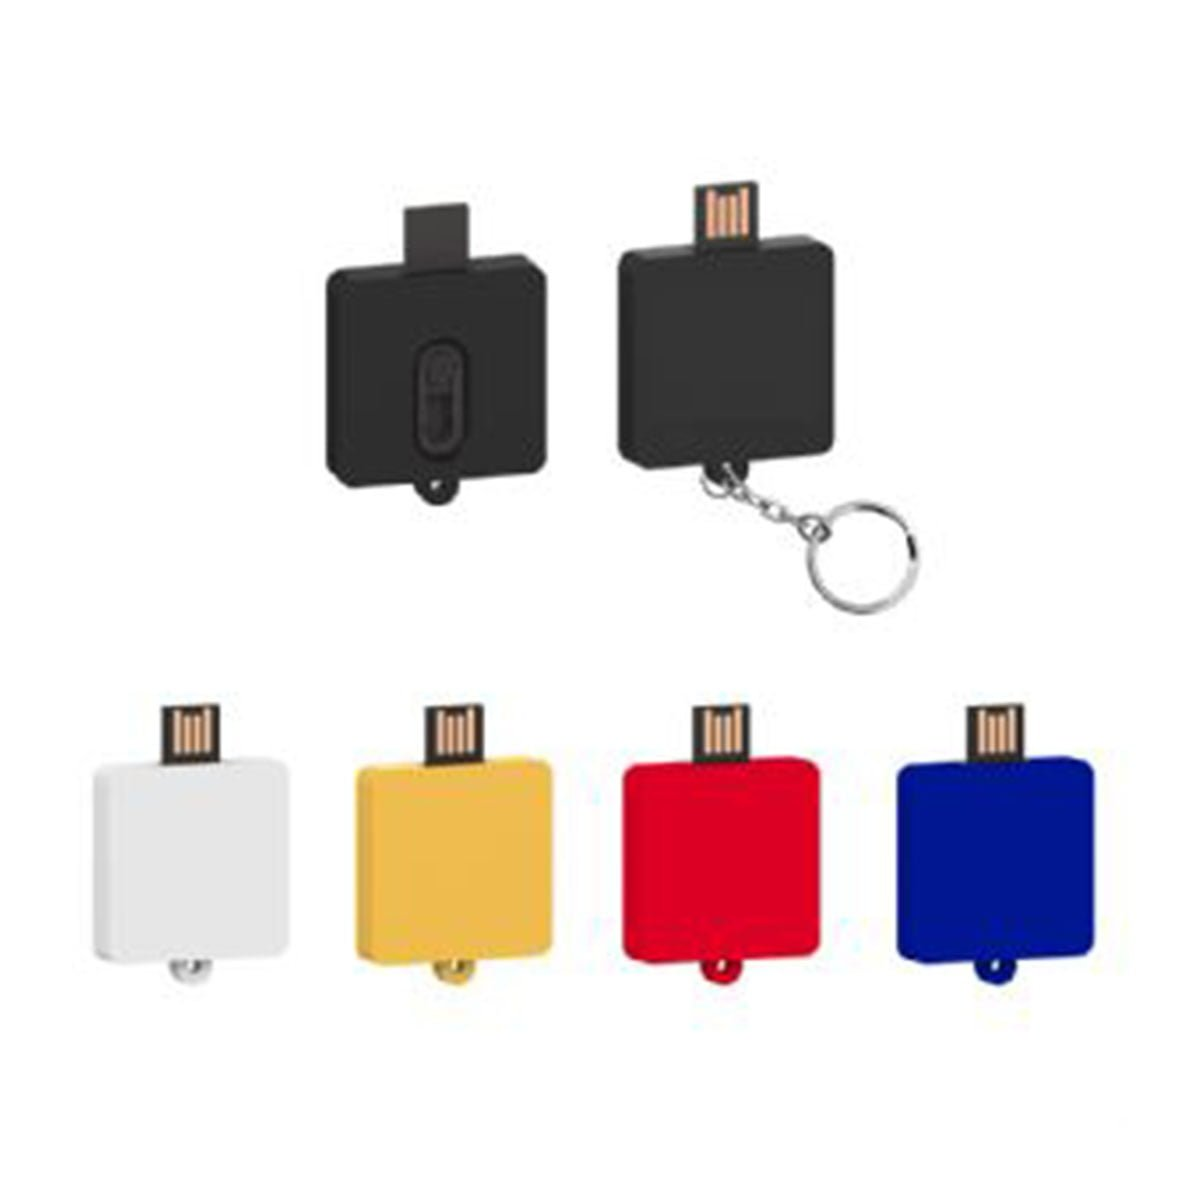 Square Slider USB Flash Drive-You can change up to 2 of the base PVC colours and print your logo in 1-2 colours in 1 position.